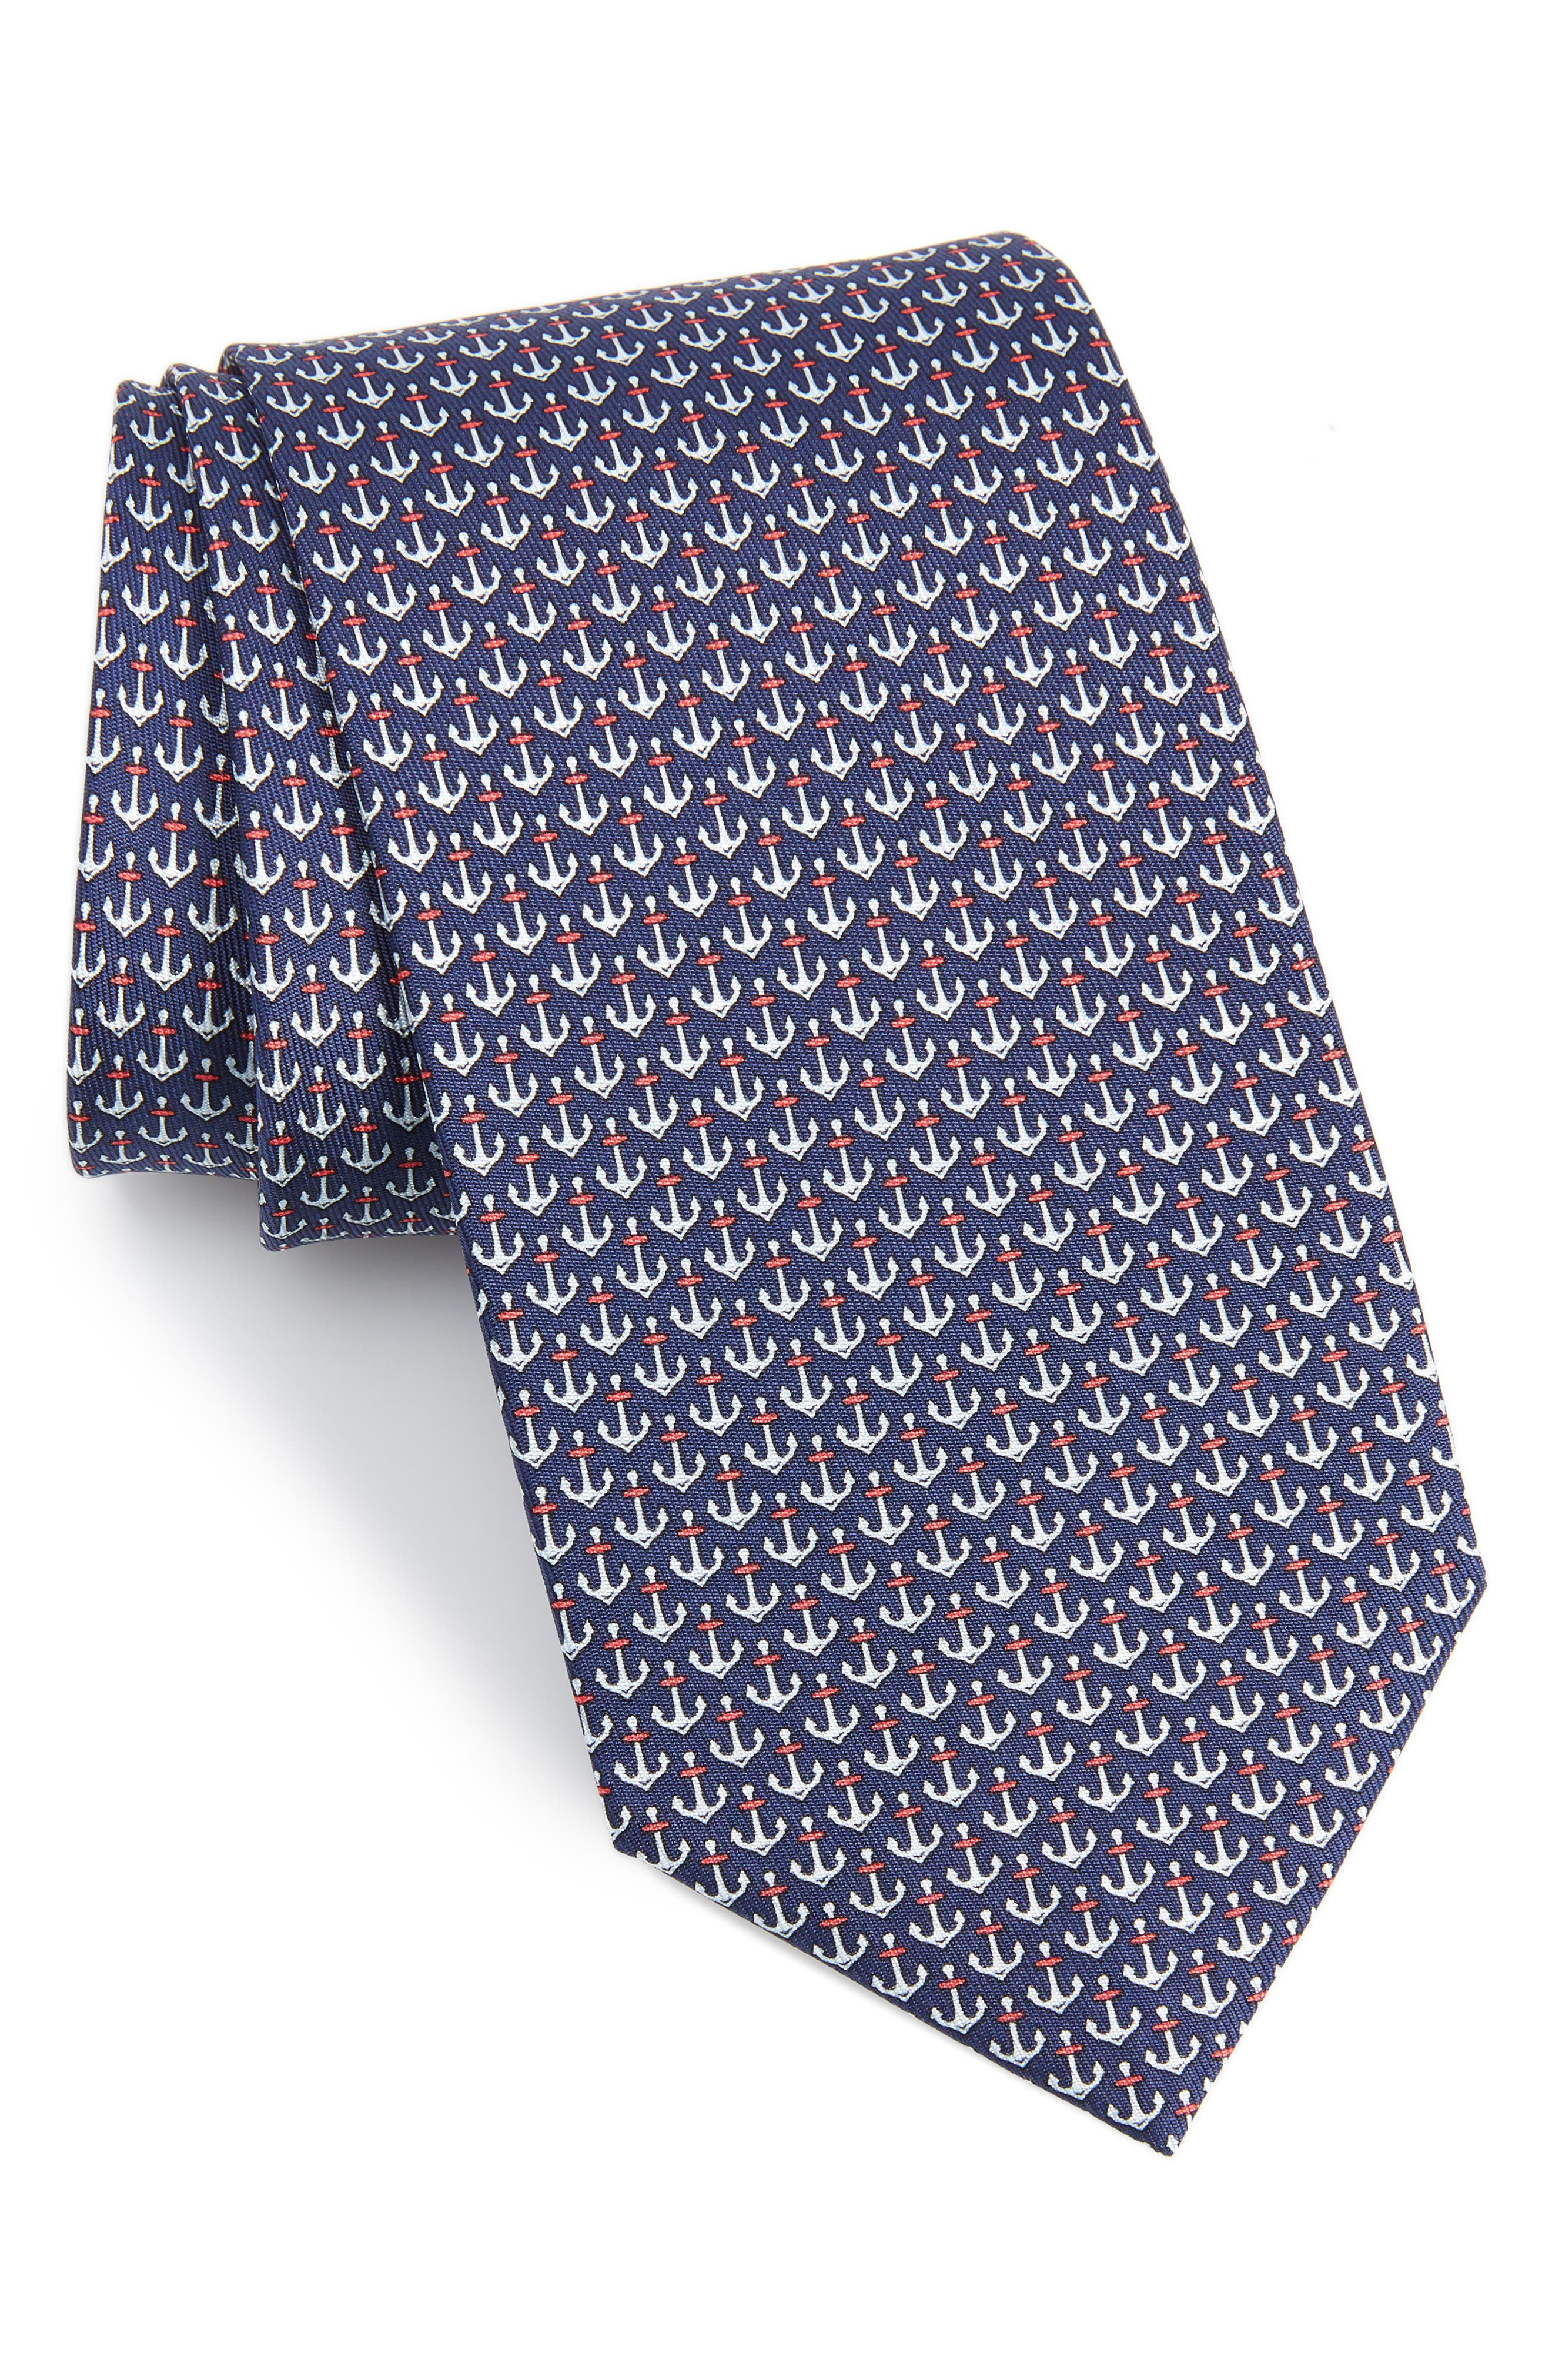 Encora Silk Tie,                         Main,                         color, NAVY